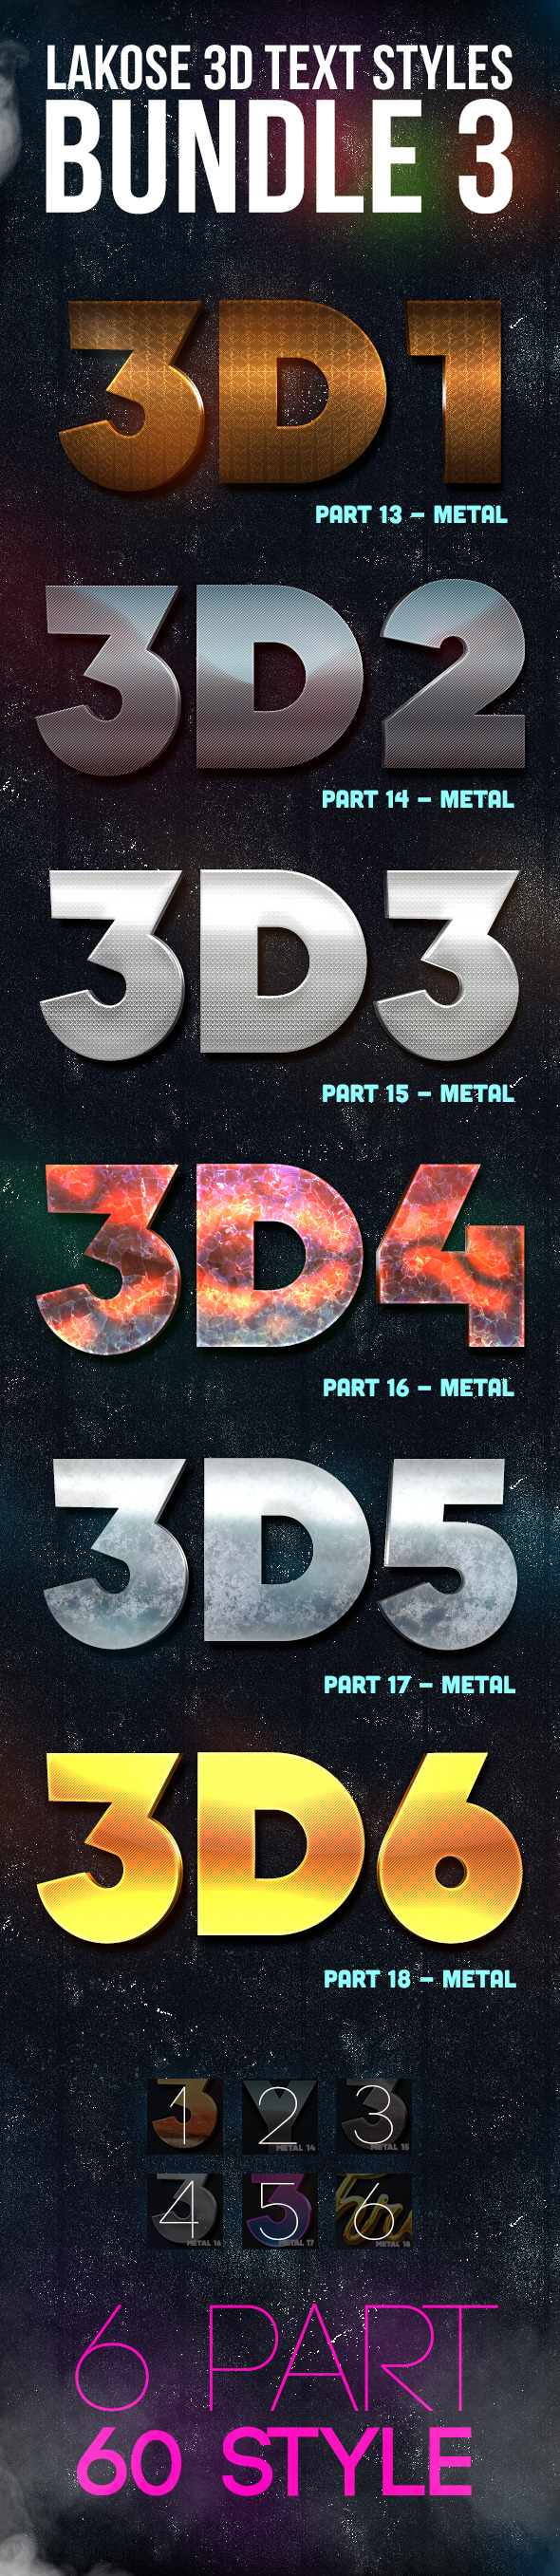 GraphicRiver Lakose 3D Text Styles Bundle 3 9984188